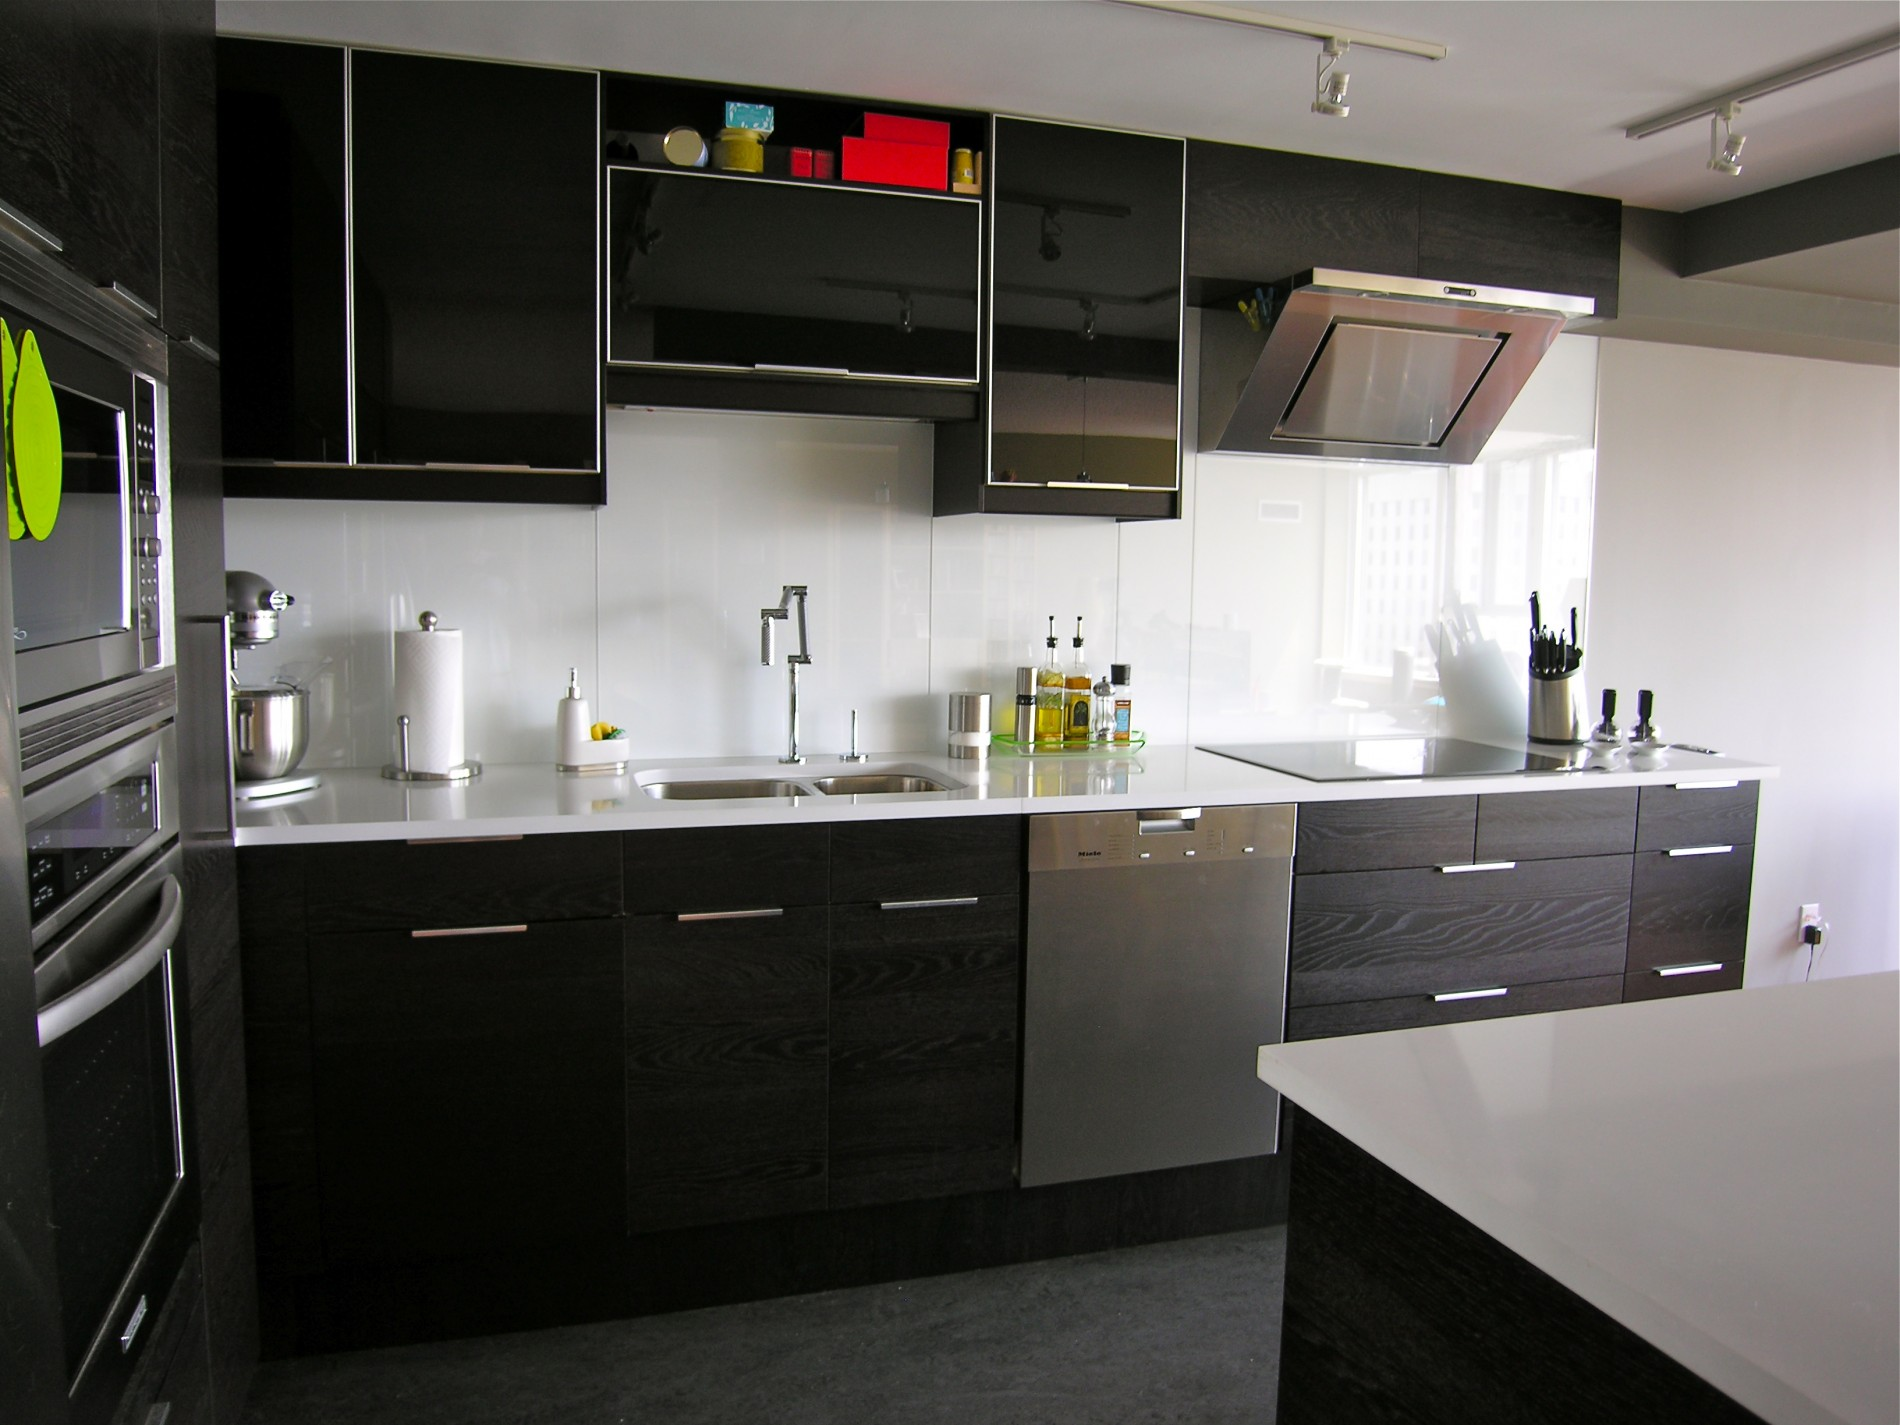 Modern Toronto Condo Kitchen - Featured Image